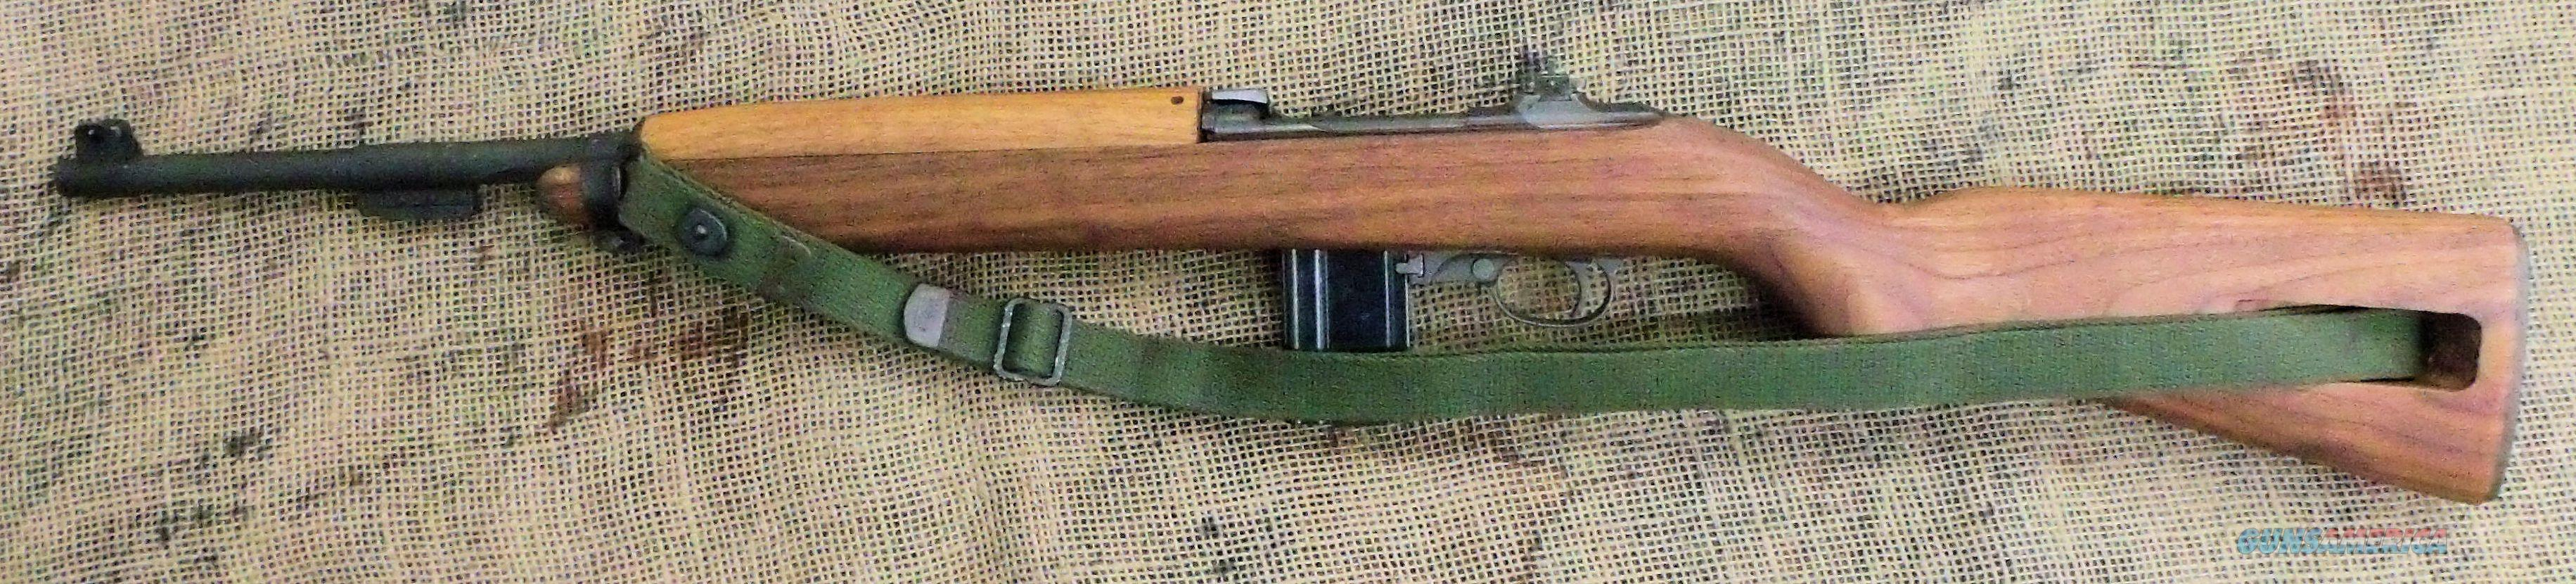 SPRINGFIELD ARMORY M1 Carbine Semi-Auto Rifle in 30 Carbine  Guns > Rifles > Springfield Armory Rifles > M1 Garand